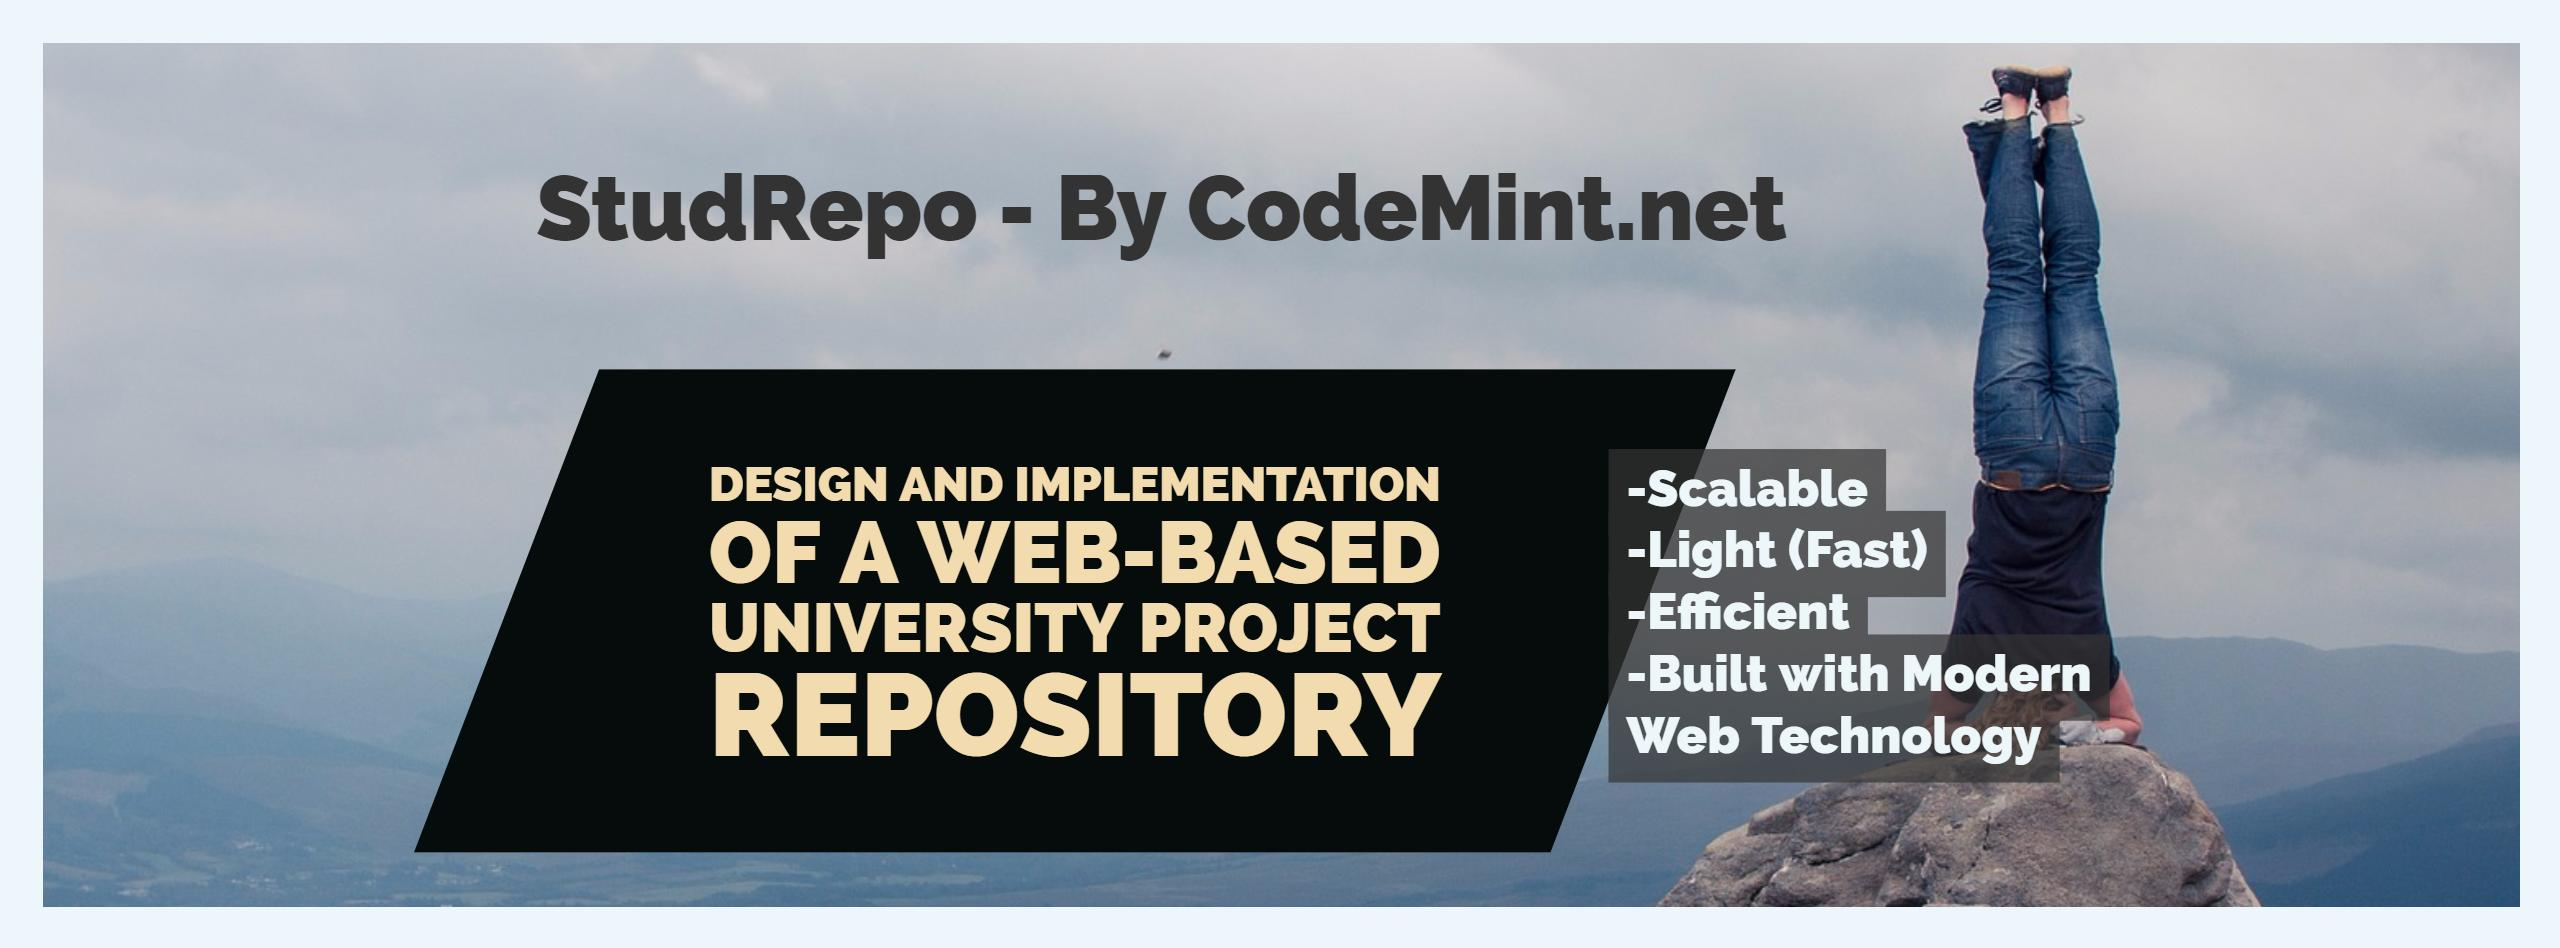 StudRepo - A Design and Implementation of a Project Repository for University Projects - CodeMint Mint for Sale